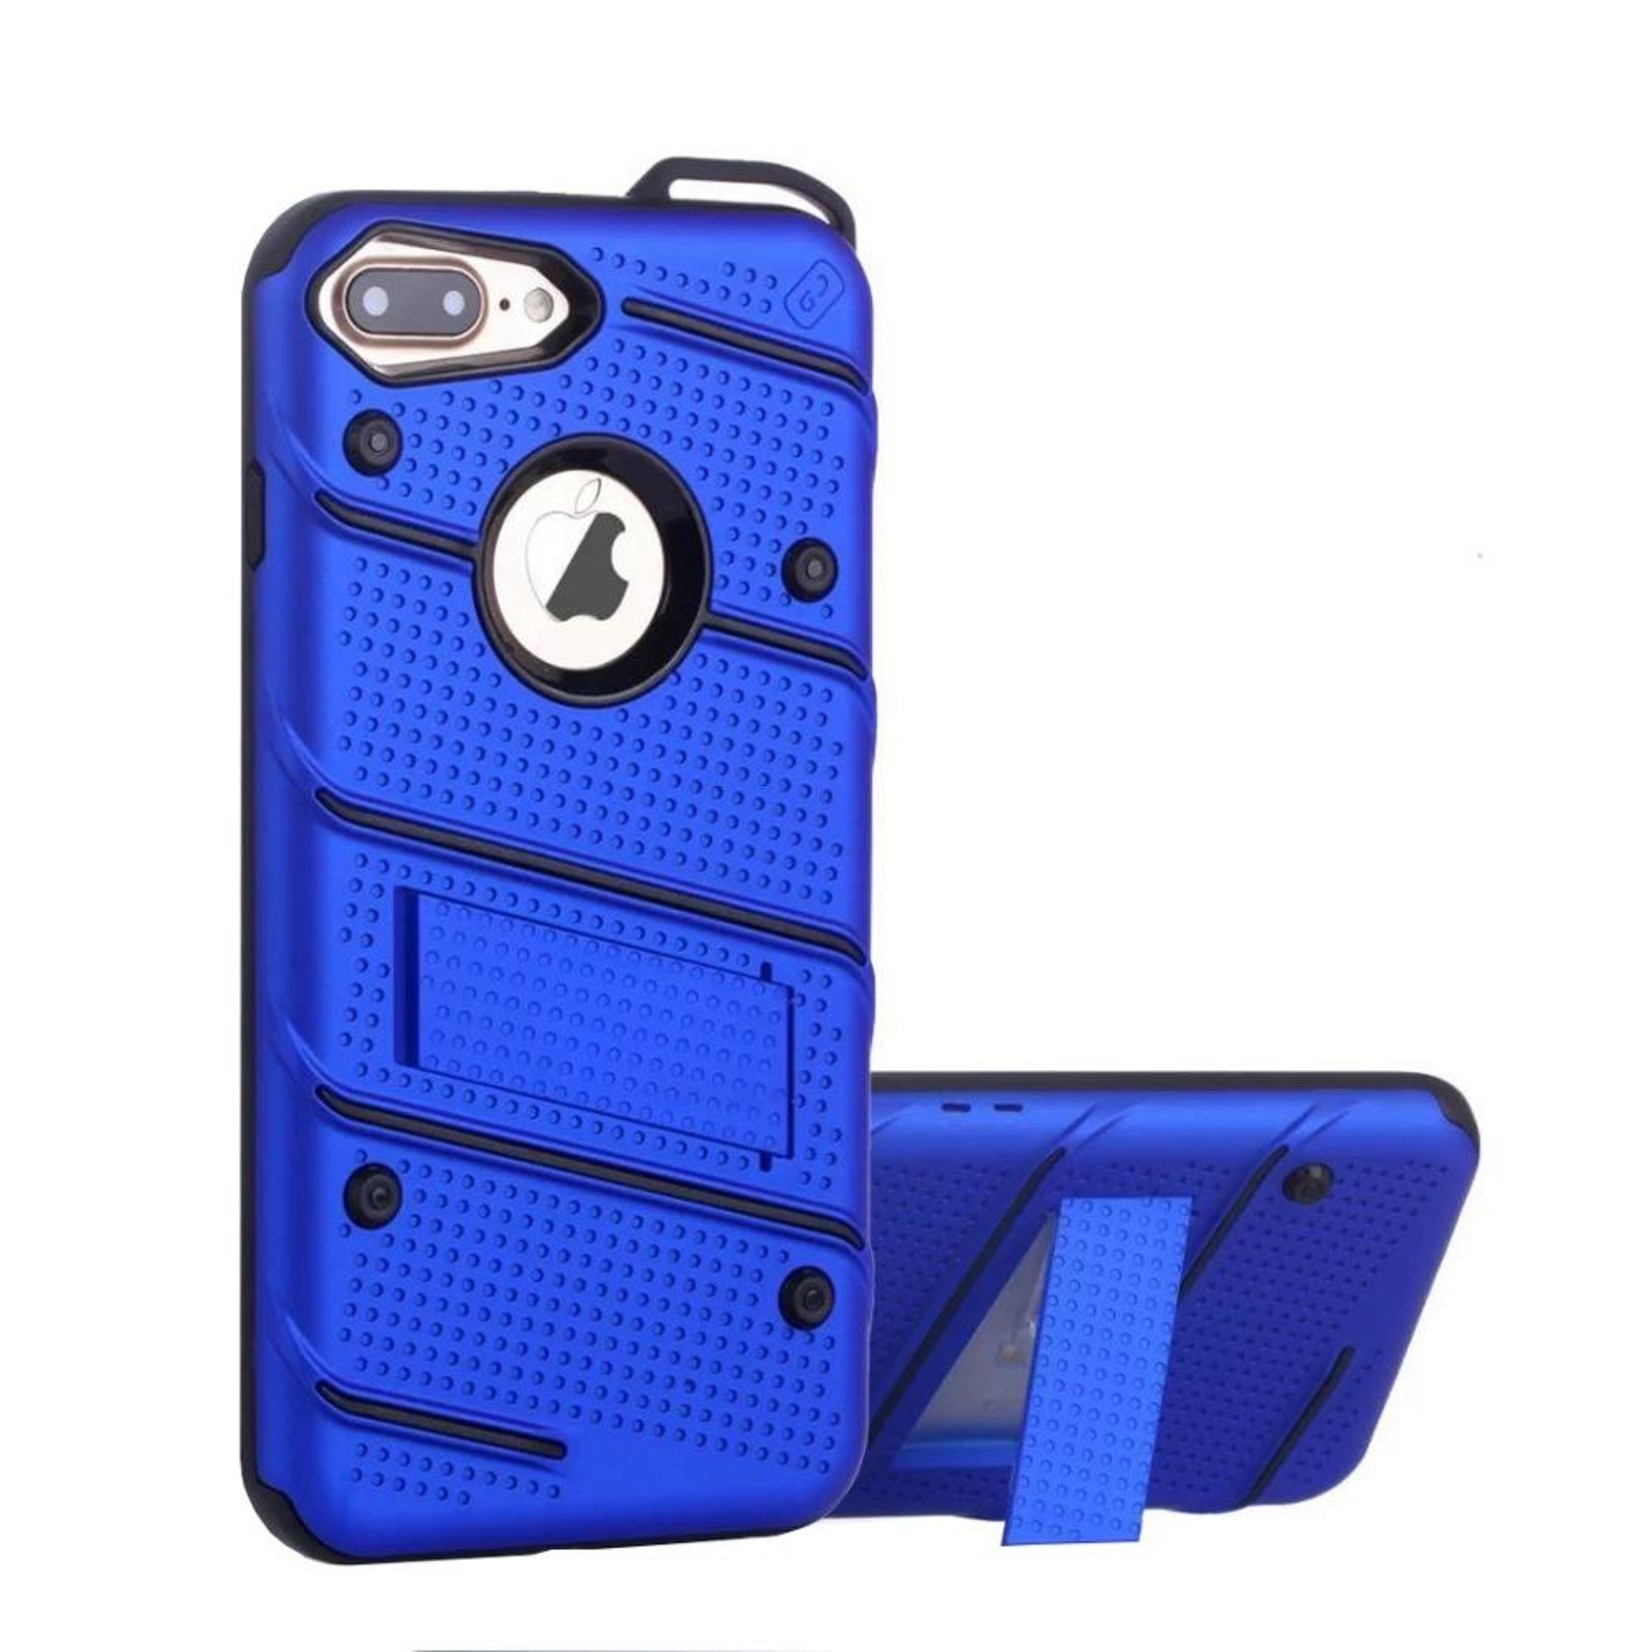 Colorfone Hoesje Armour Stand iPhone 6 Plus Blauw